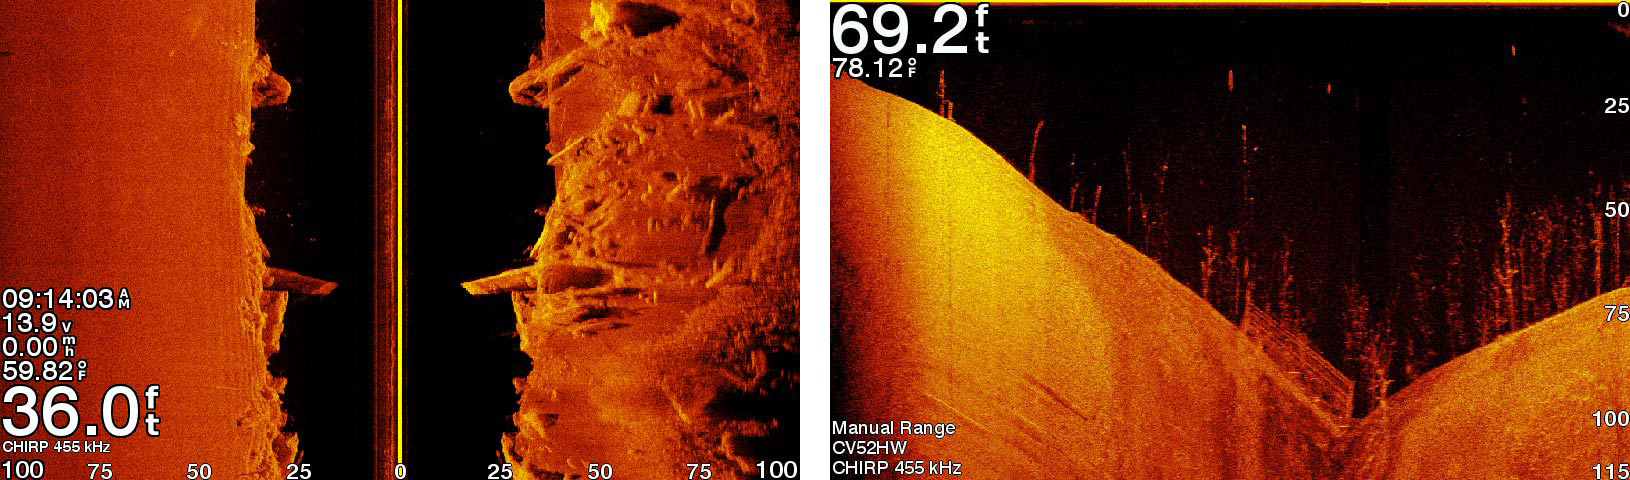 Clear Scanning Sonar Images